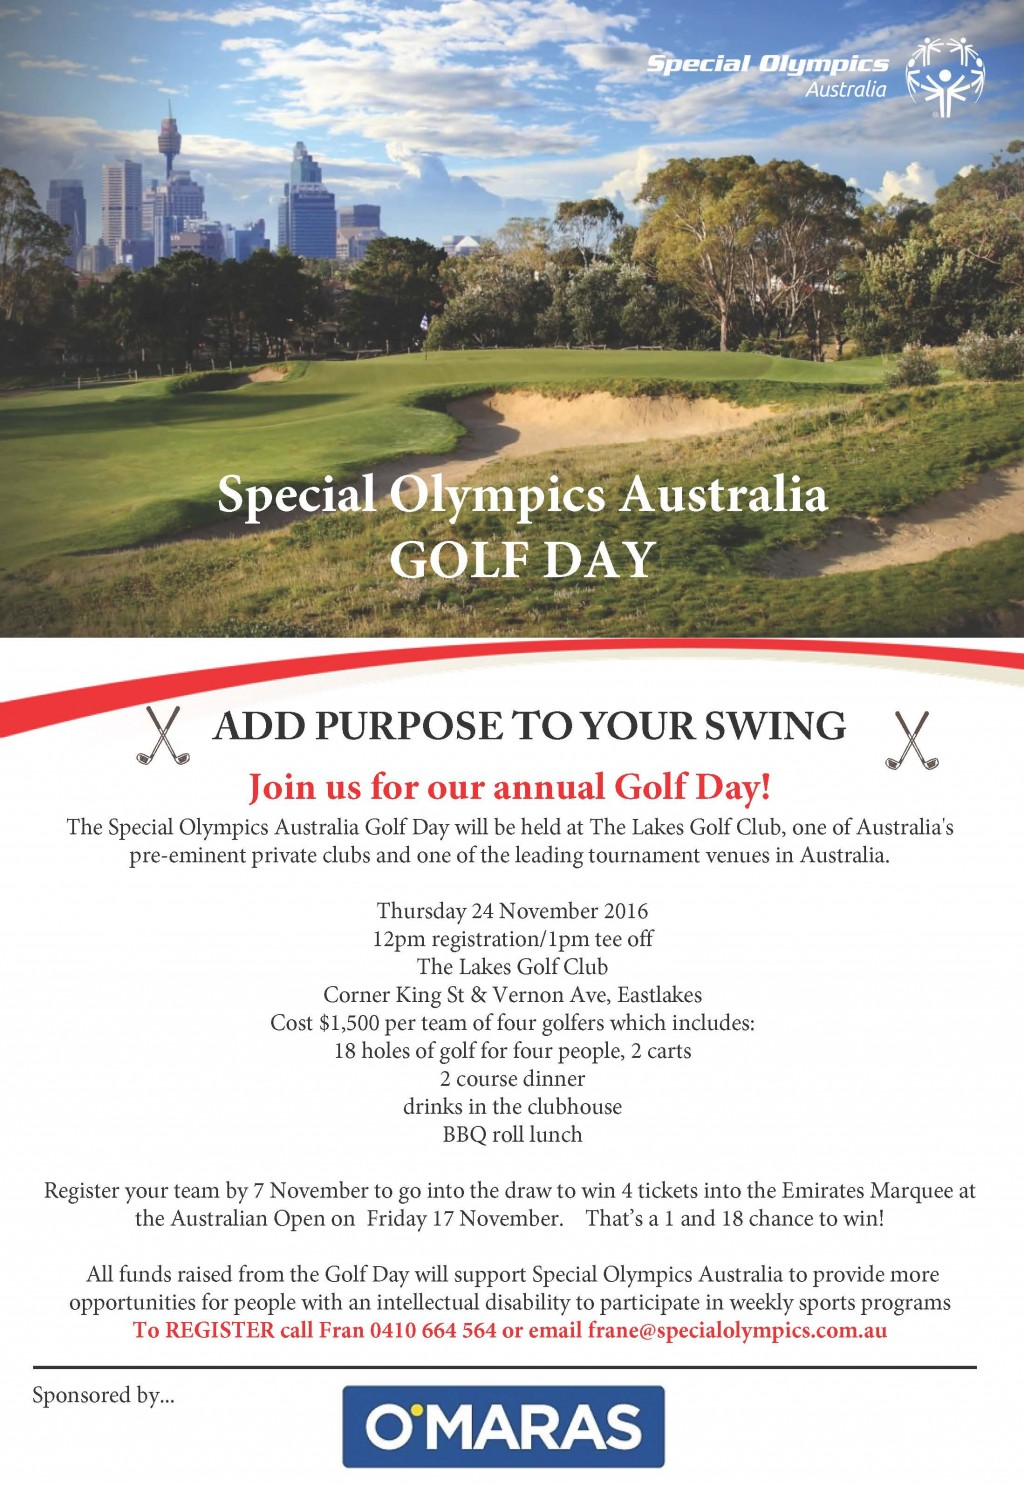 Special Olympics Australia Golf Day 2016 - Event Details